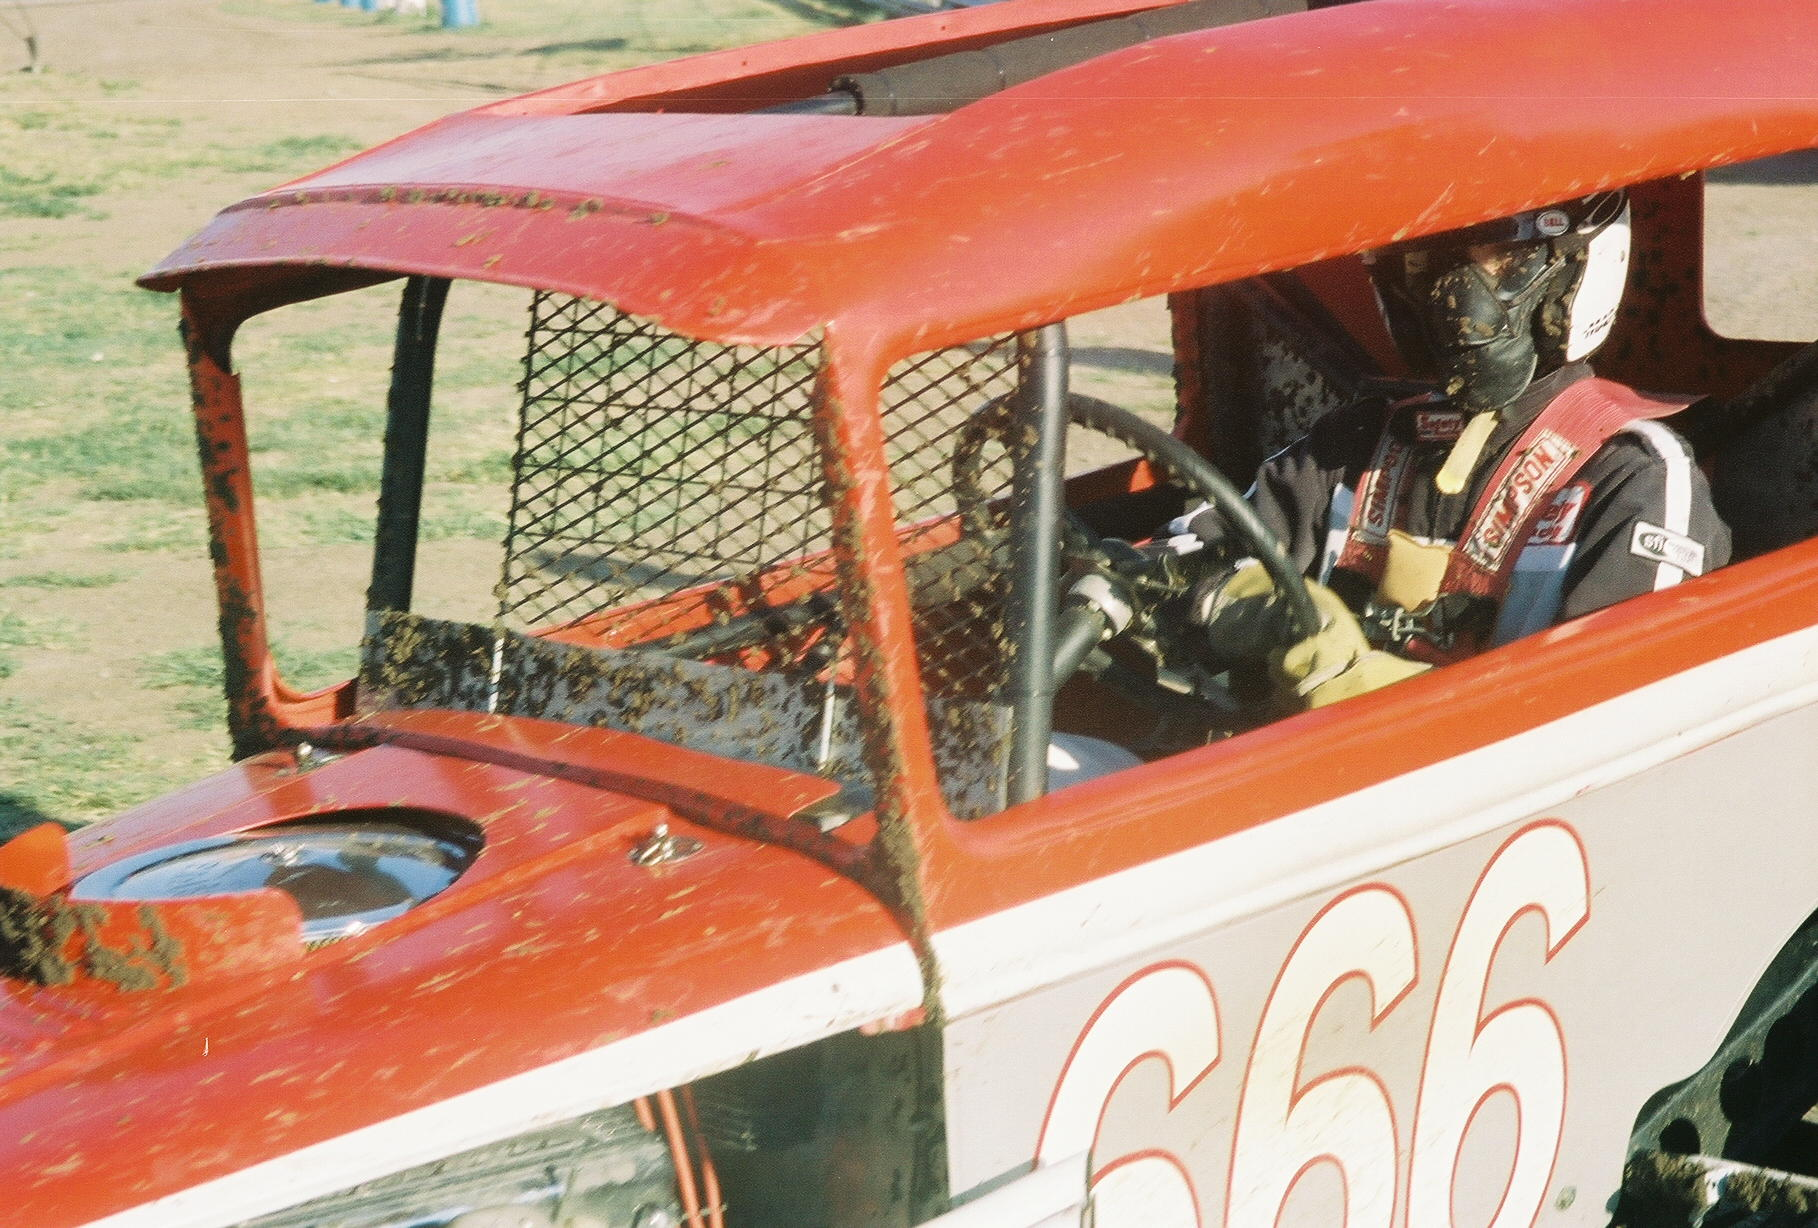 [photograph: Troy Burnett in his No. 666, Jetmore Motorplex, July 30, 2005, Jetmore, KS. Original owner, Bob Anton; driver, Dennis Anton; Anton's 66, Kinsley, KS.]